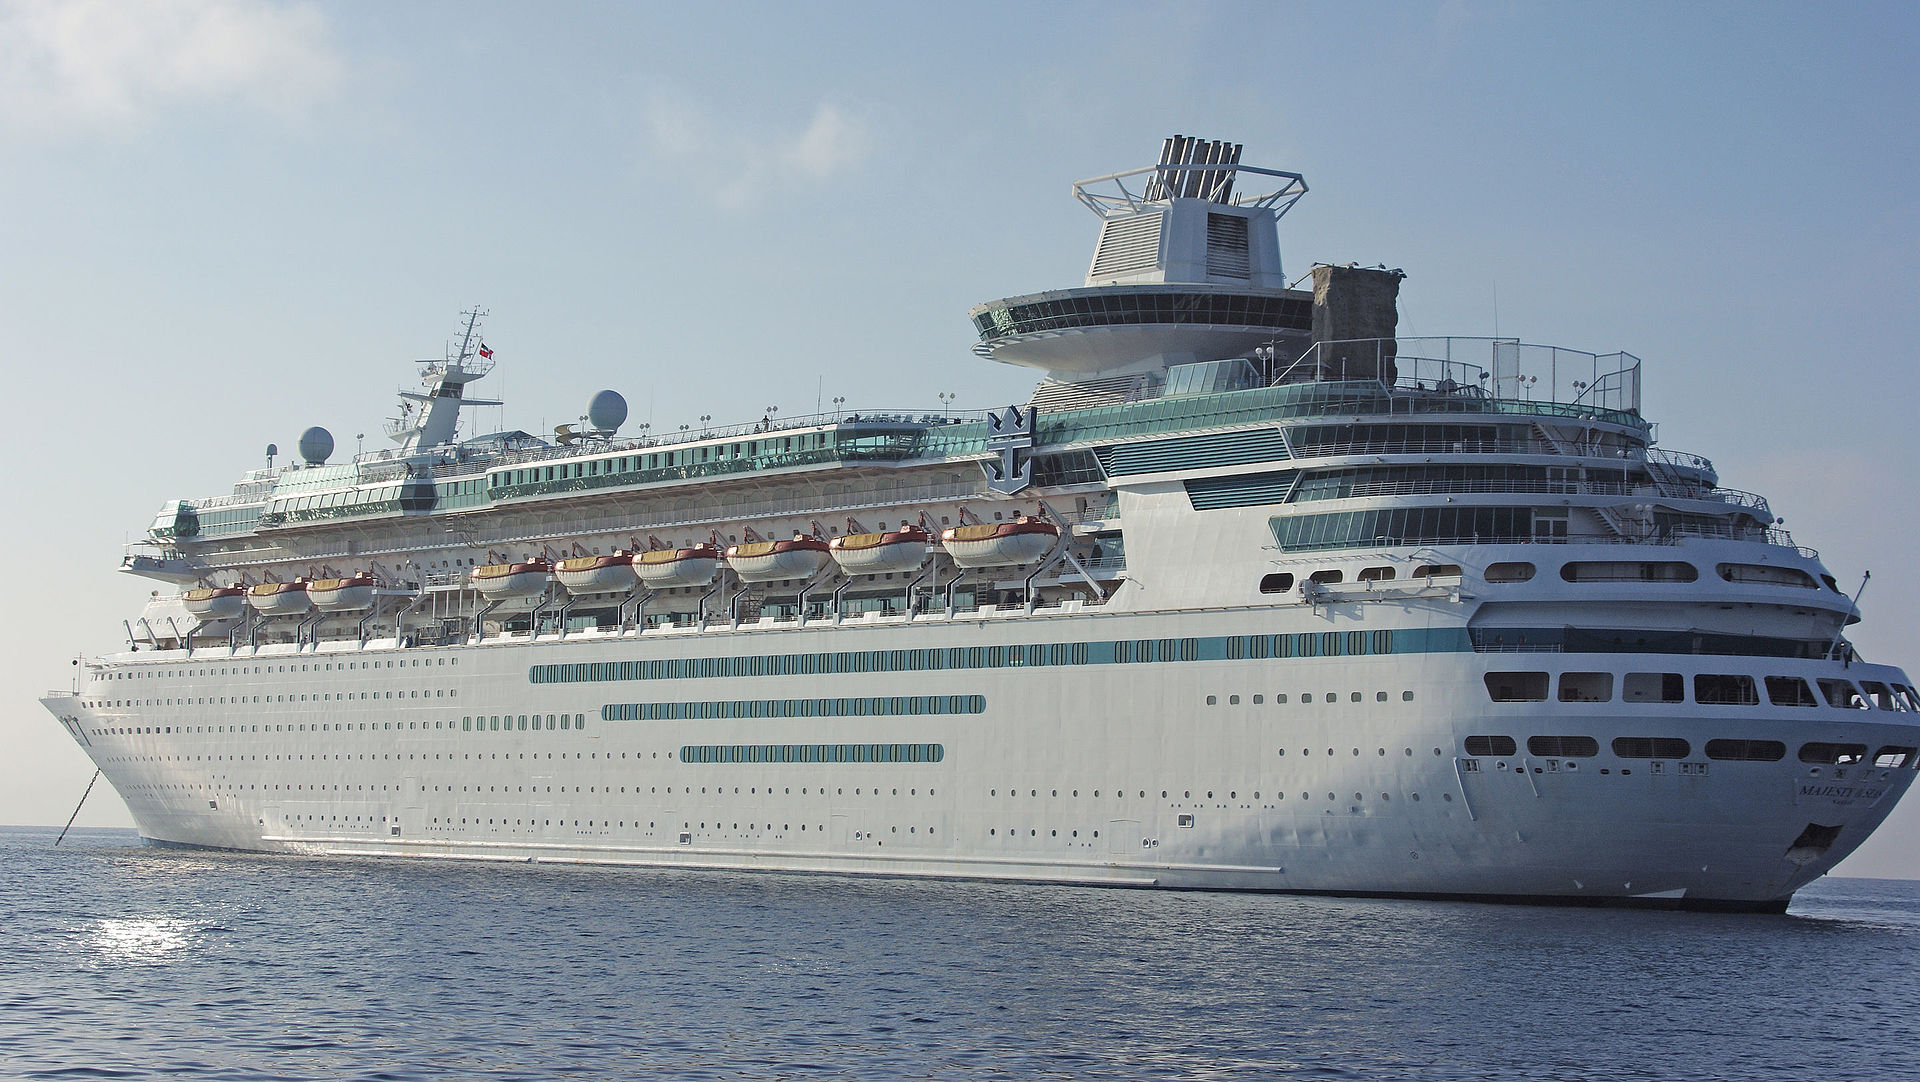 Royal Caribbean cruise ships for sale